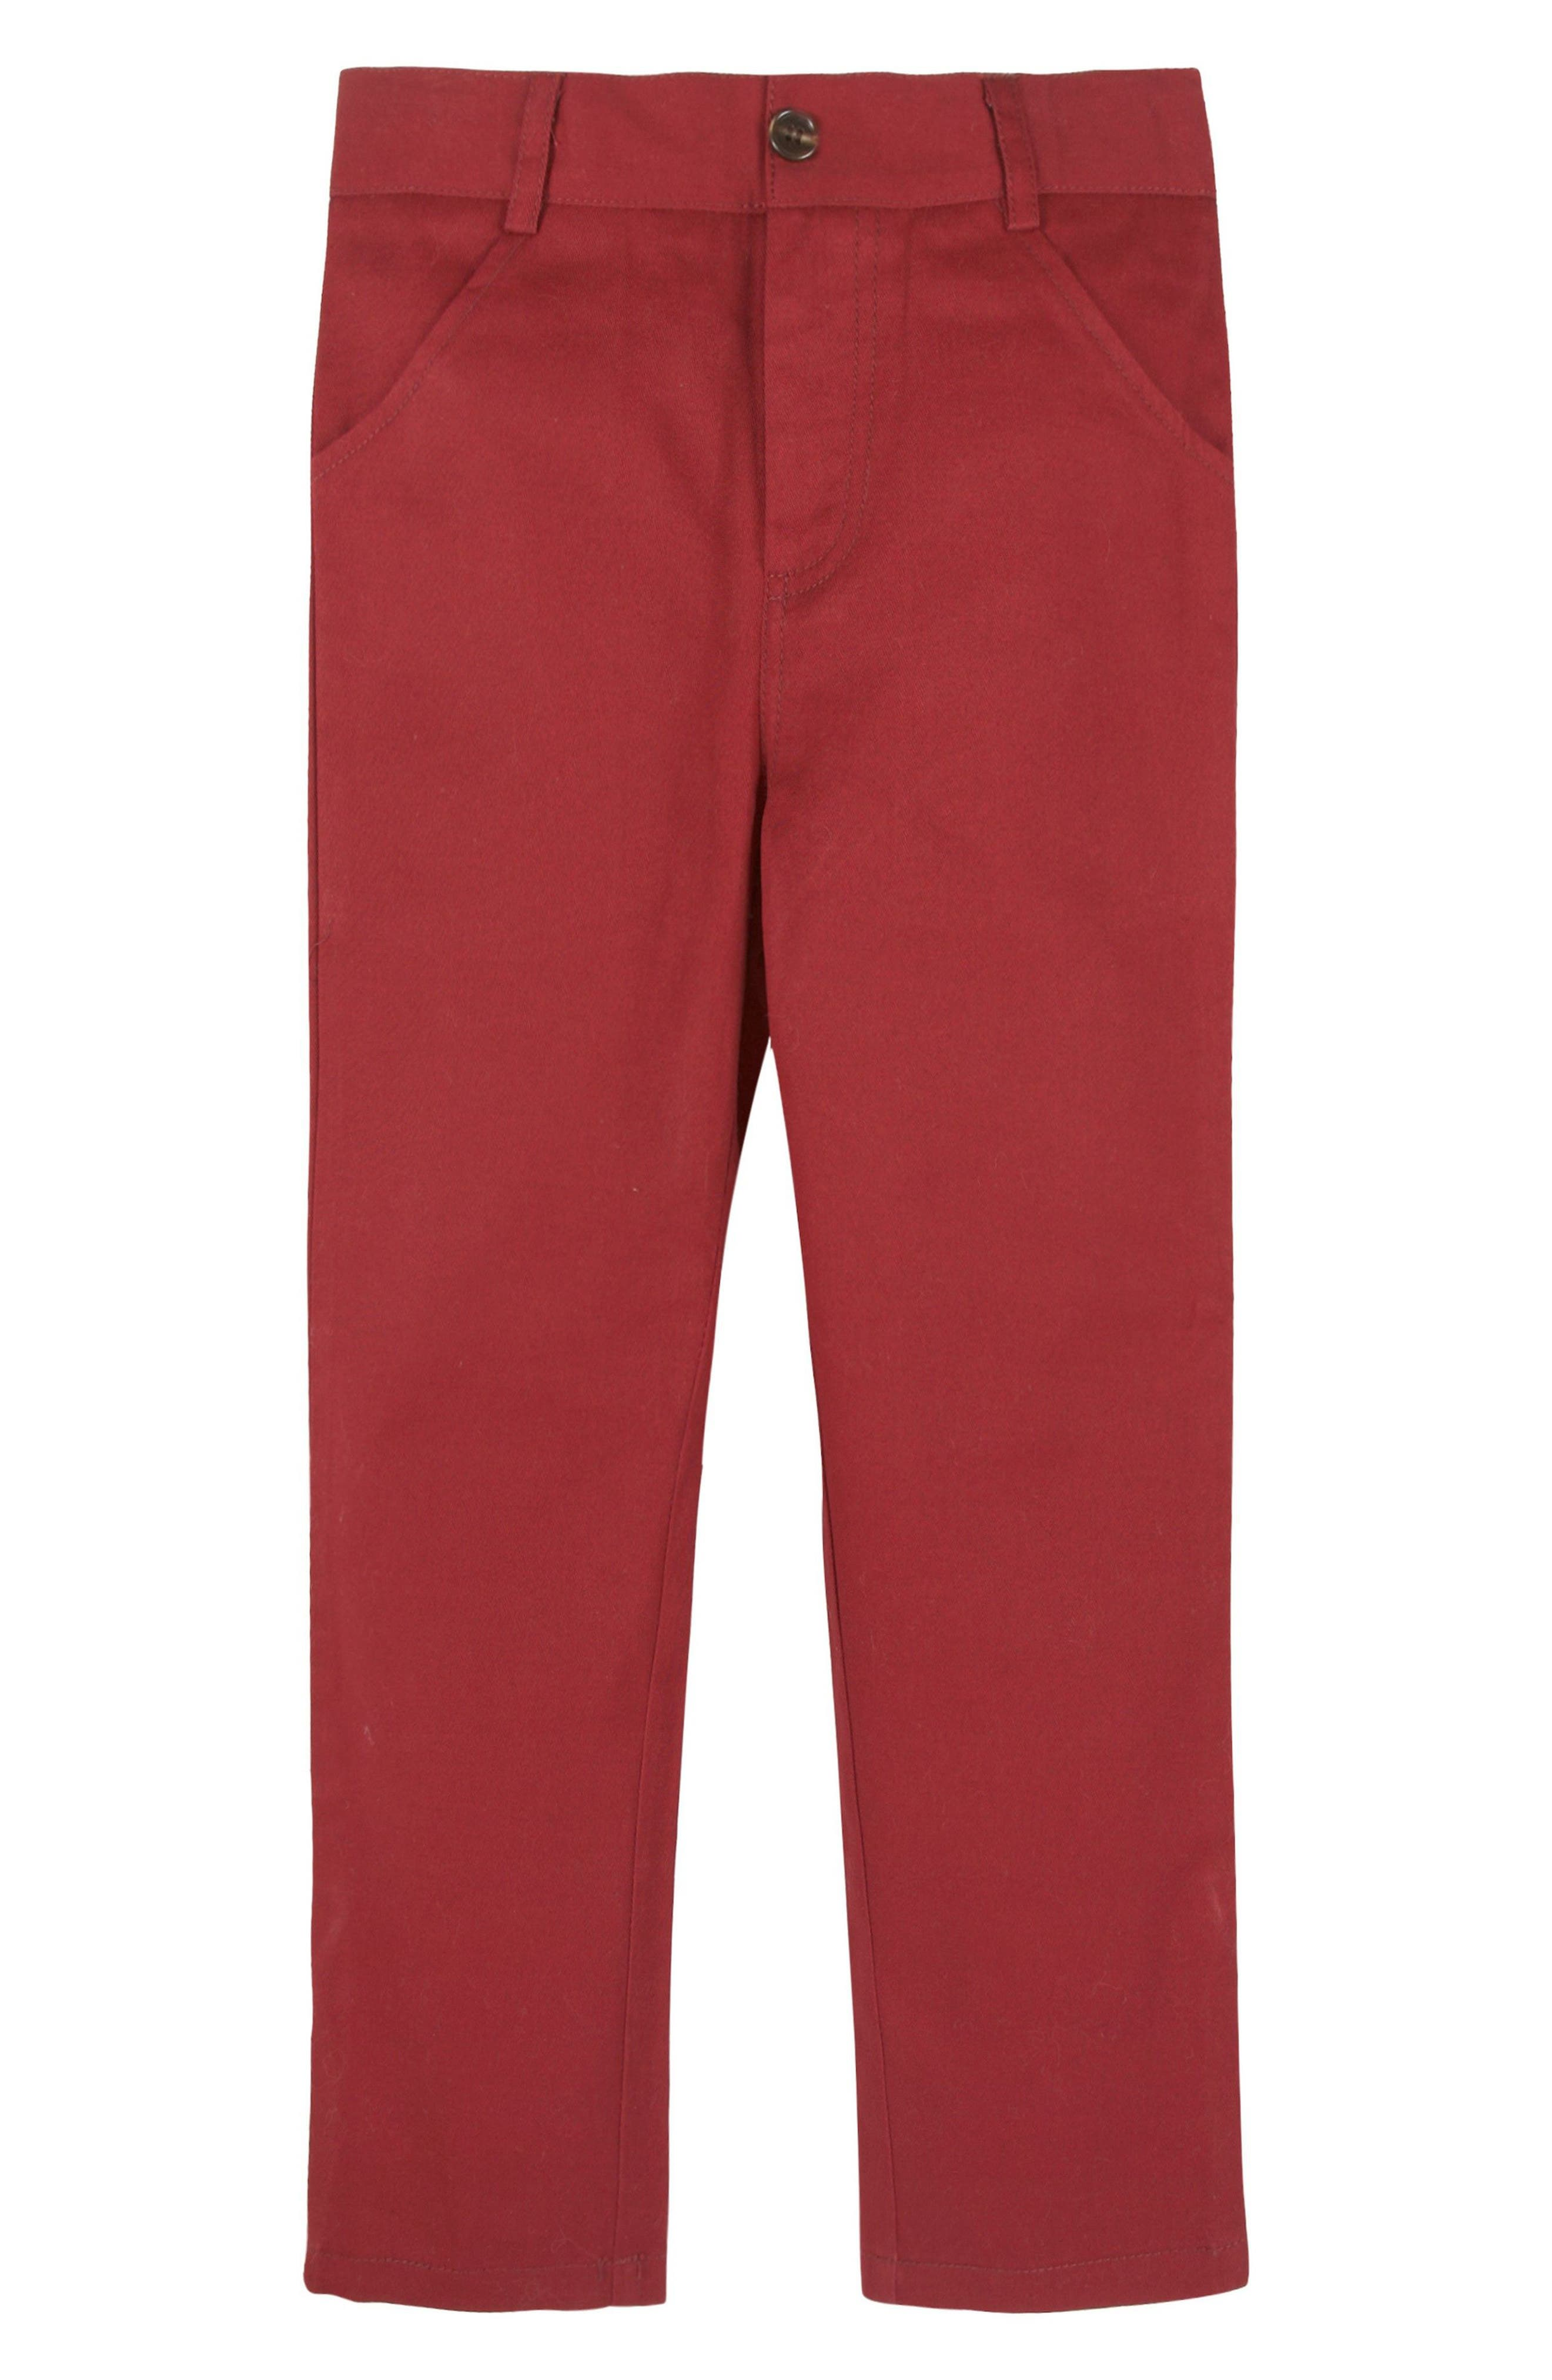 Alternate Image 1 Selected - Andy & Evan Stretch Cotton Twill Pants (Baby Boys)